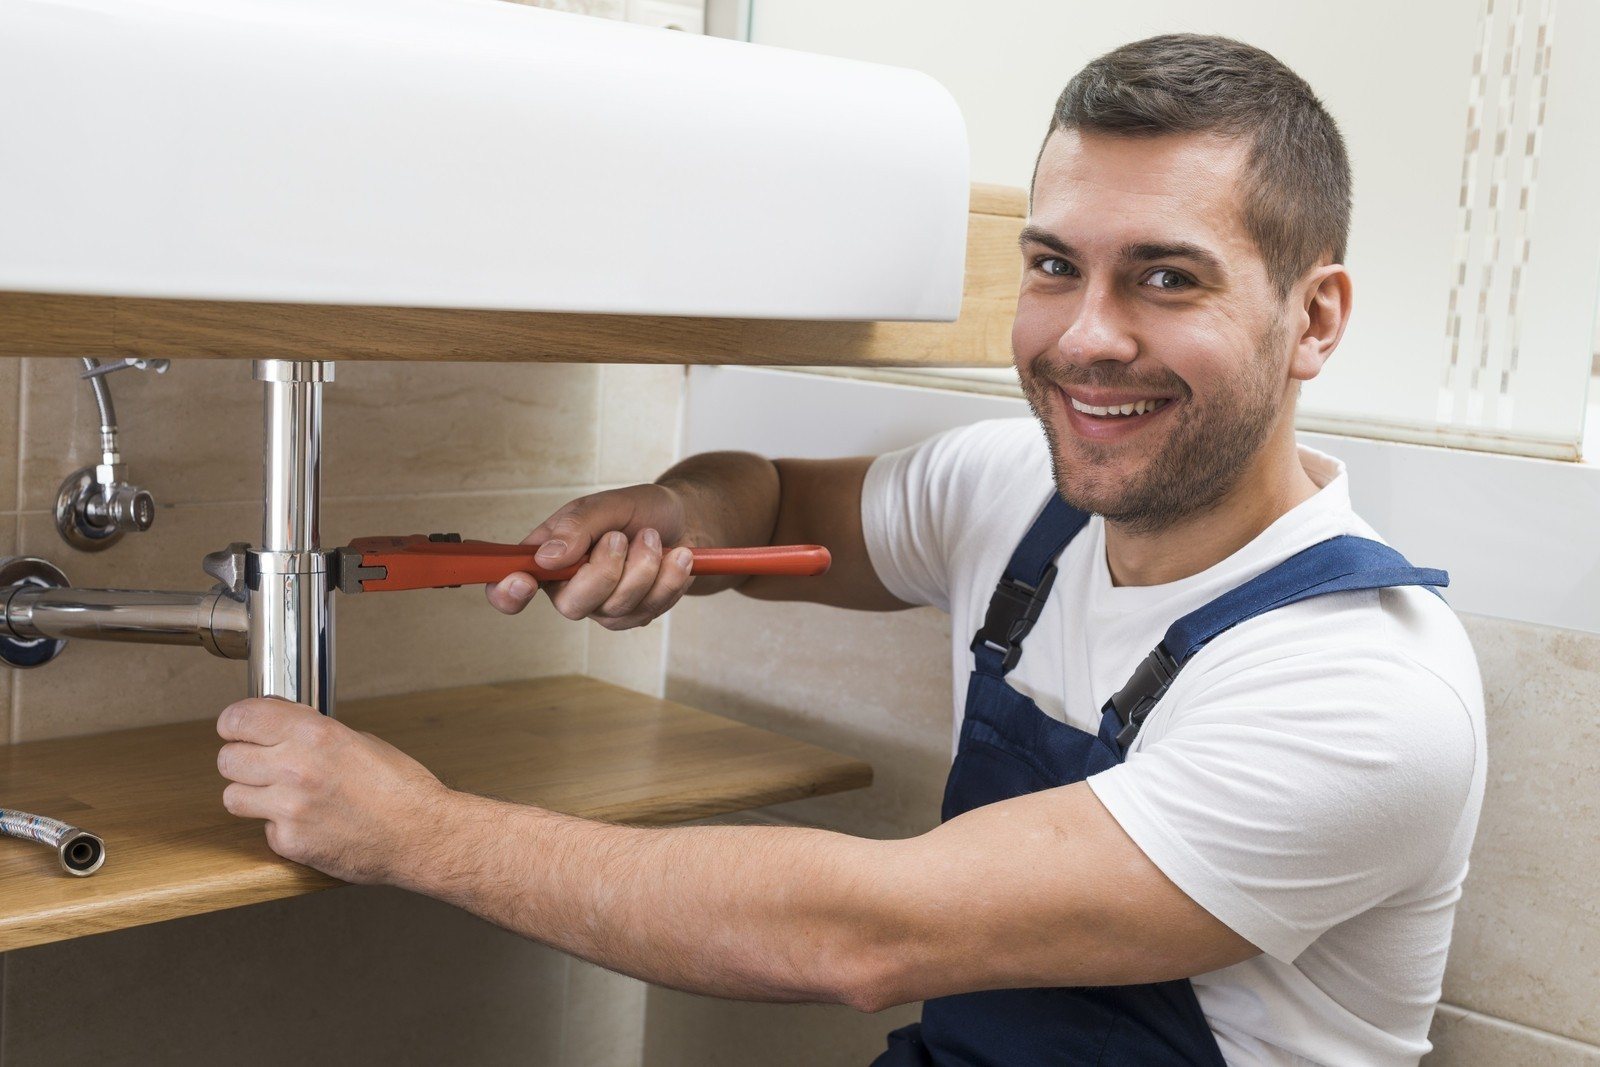 IppoFix.com – Plumber-Electrician Carpenter Cleaner/UPS/AC Service and More